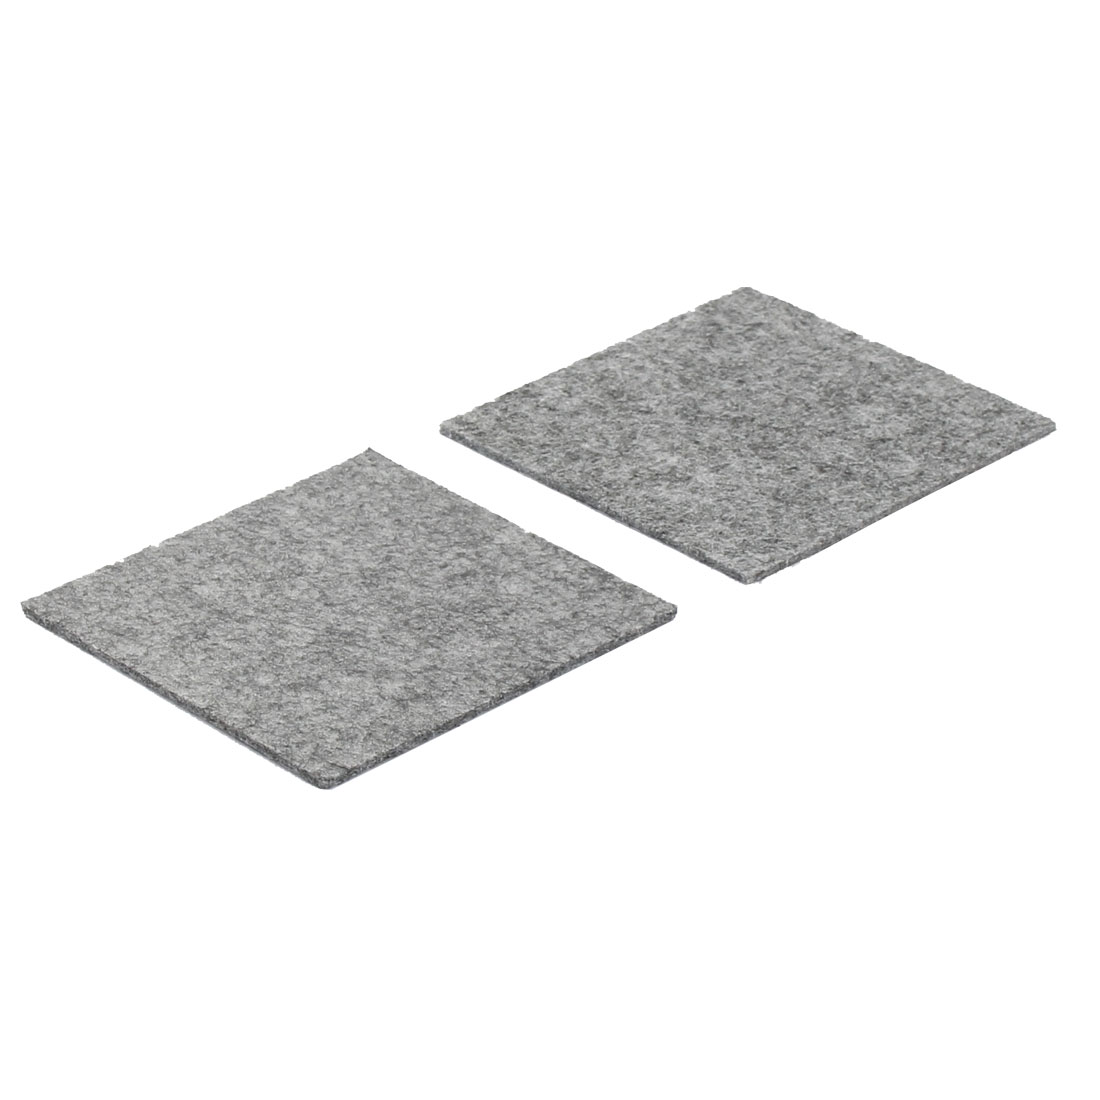 Table Chair Legs Square Anti Slip Furniture Felt Pads Covers Protector Gray 85 x 85mm 2pcs